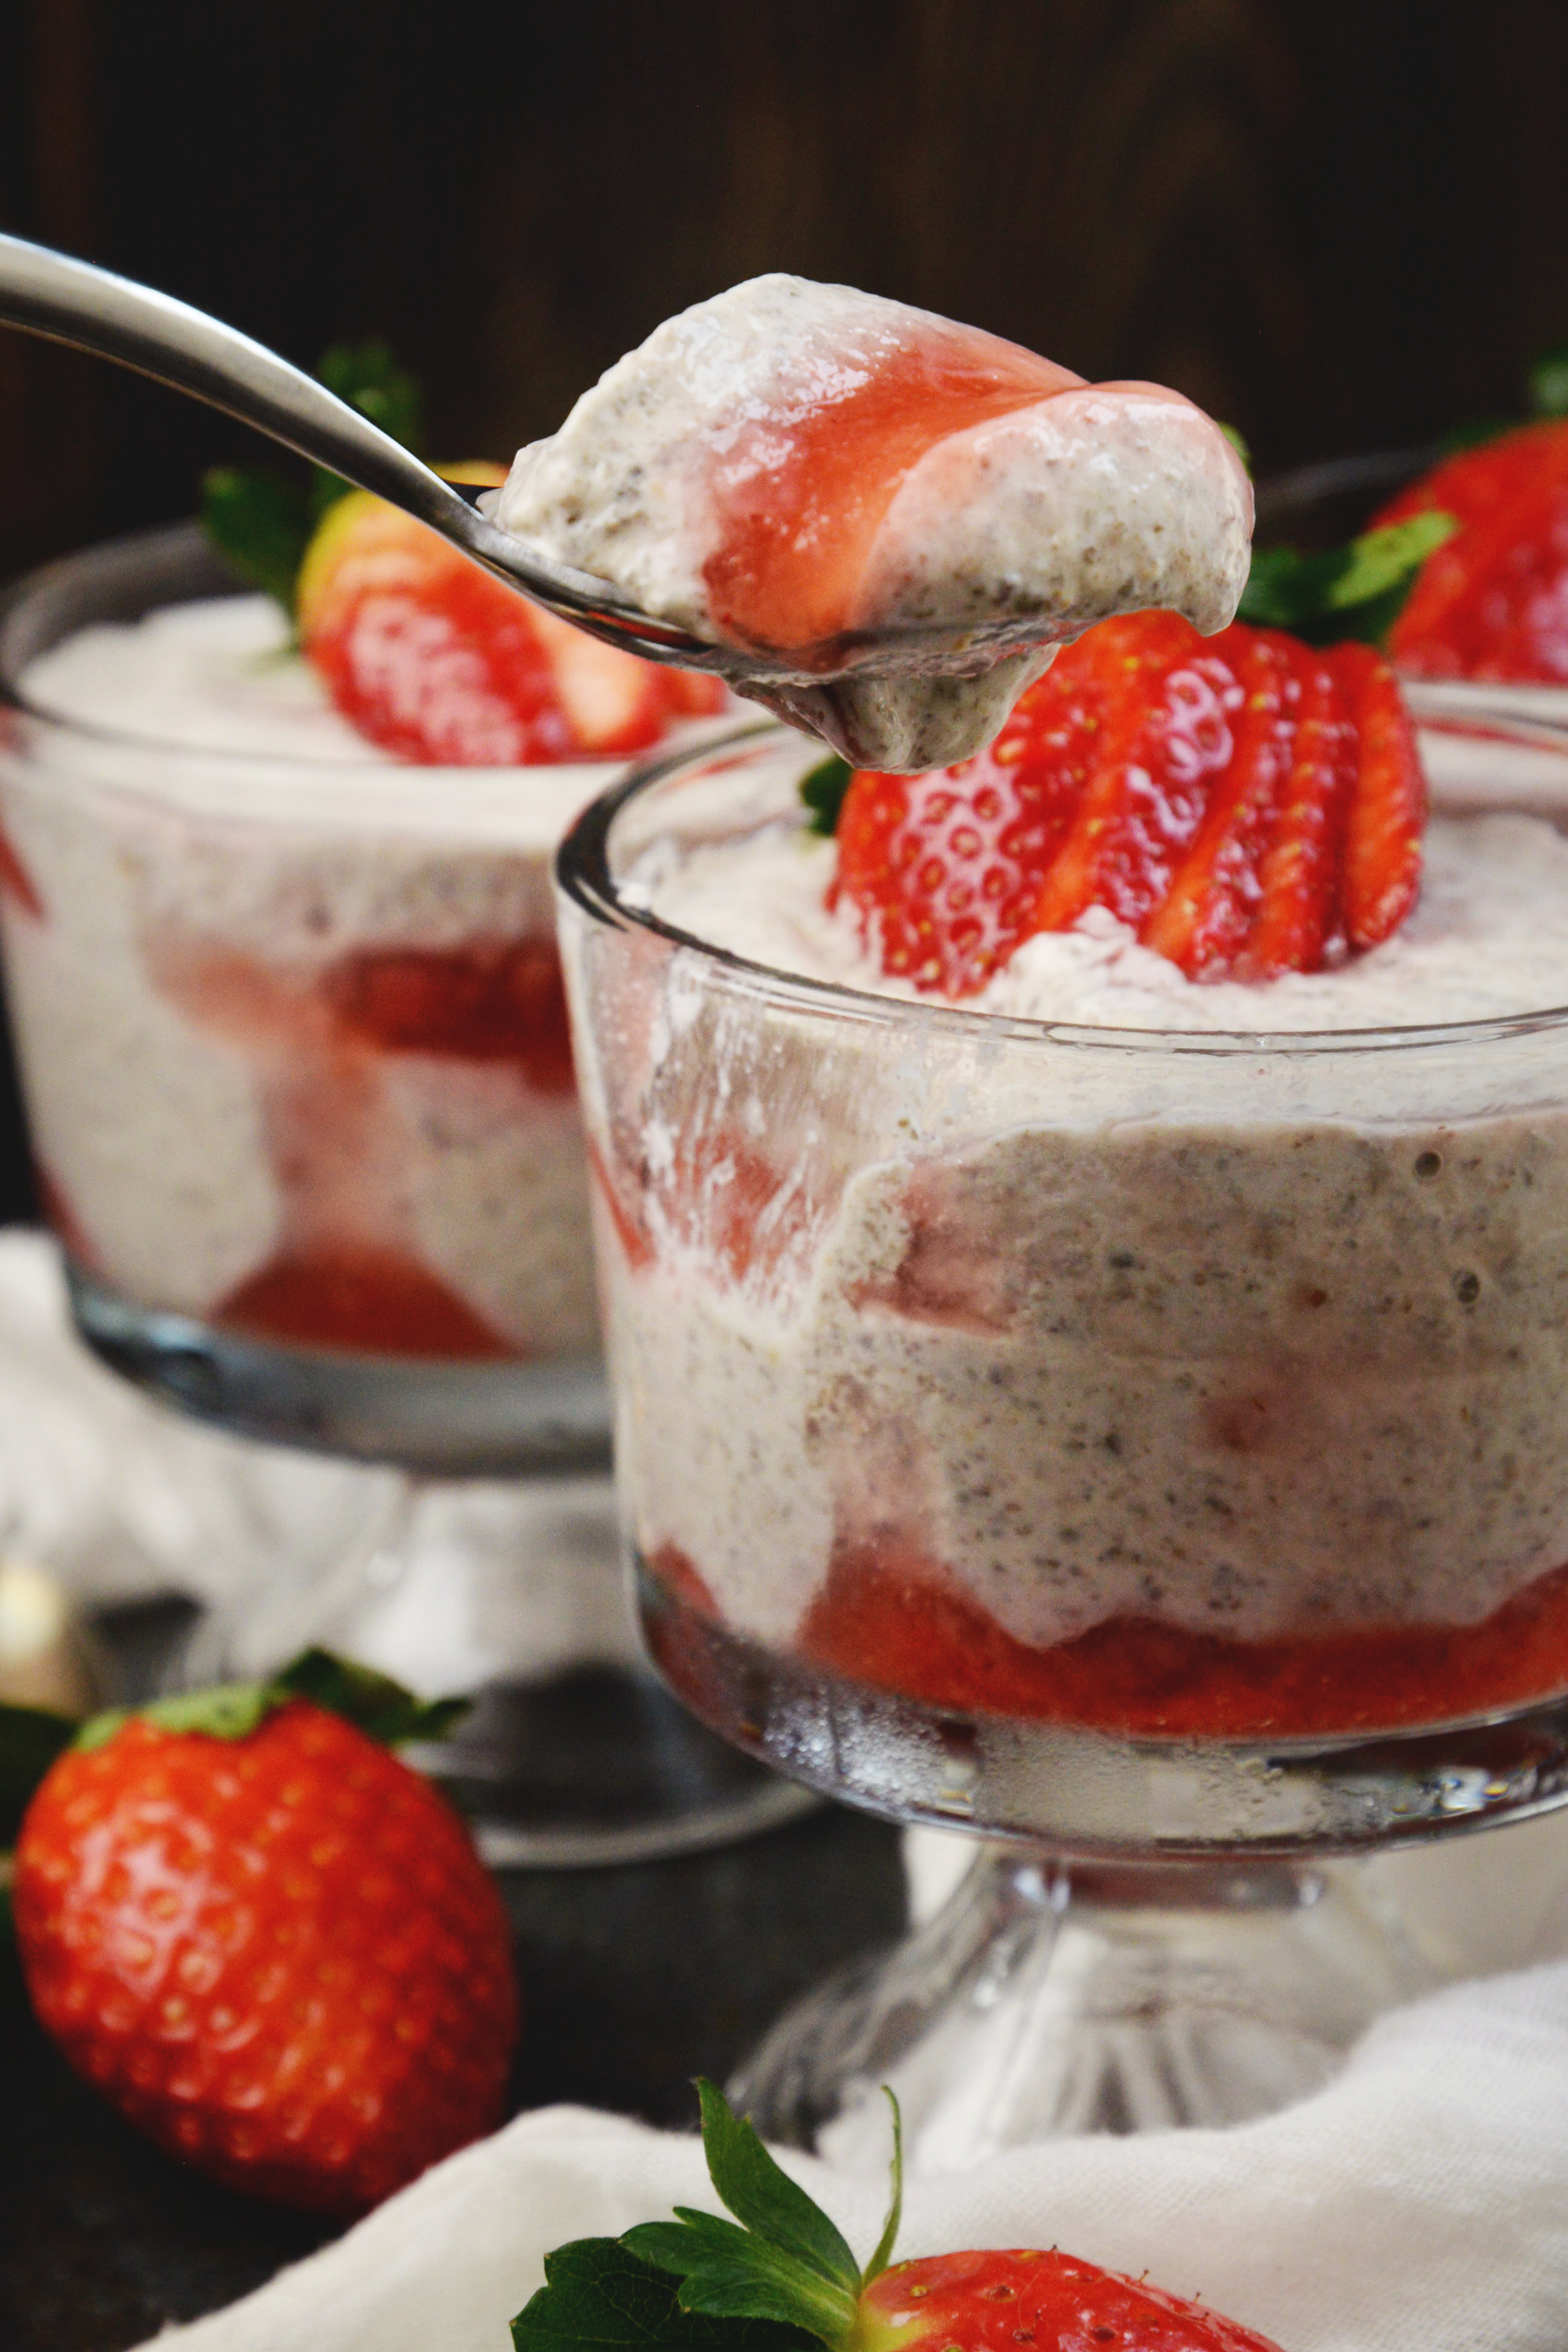 Low-Carb Strawberry Cheesecake Chia Pudding-ready to dig in!